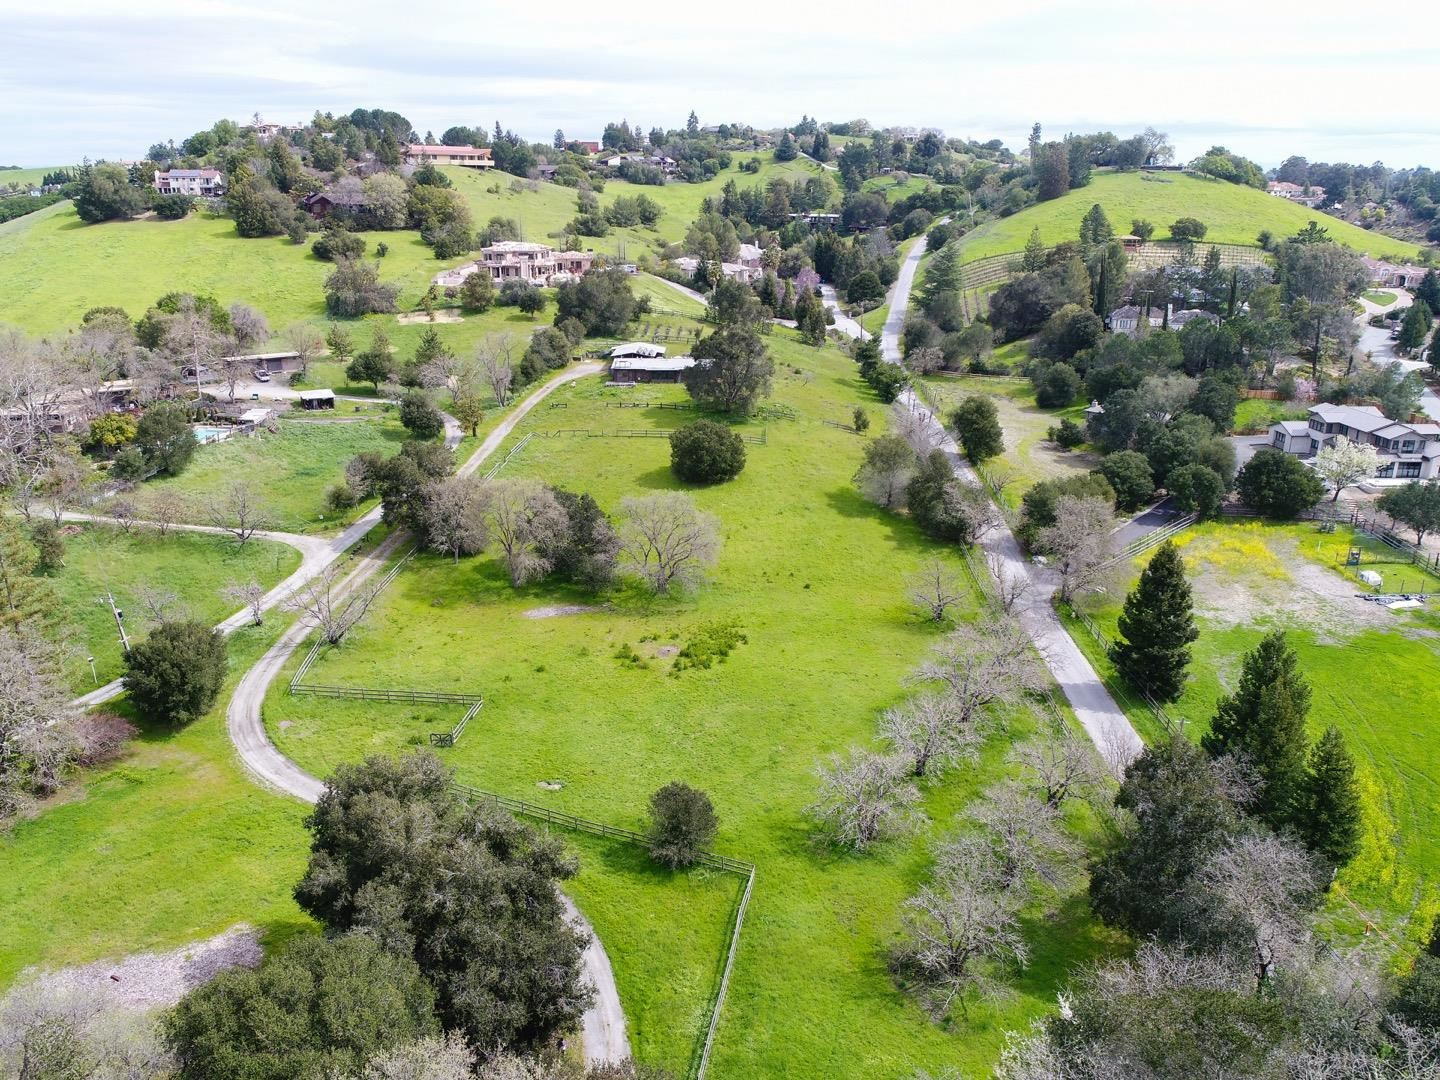 Photo for 13830 Page Mill RD, LOS ALTOS HILLS, CA 94022 (MLS # ML81747400)